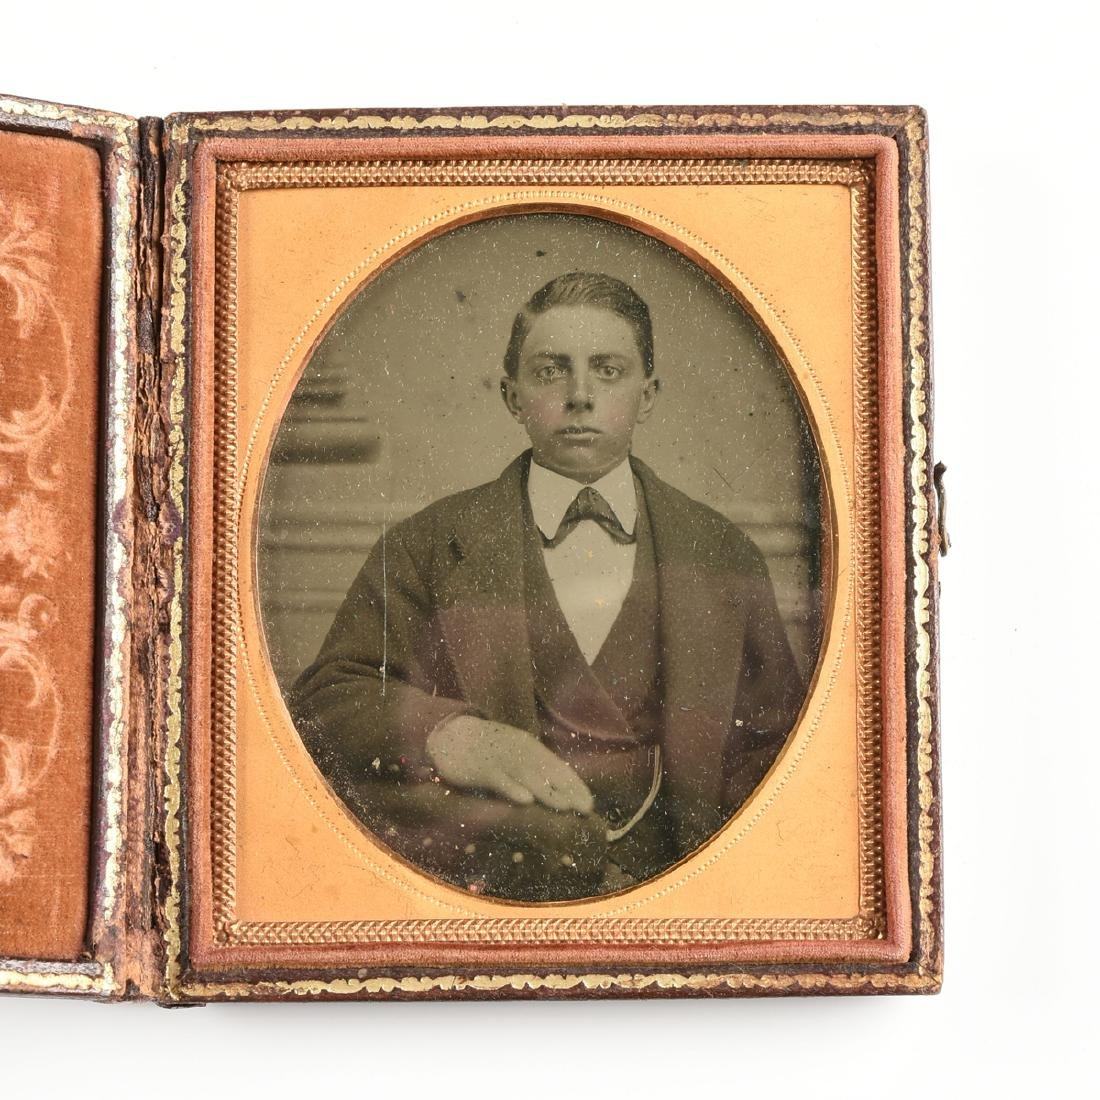 A GROUP OF FIVE EARLY PHOTOGRAPHIC PORTRAITS IN LEATHER - 8